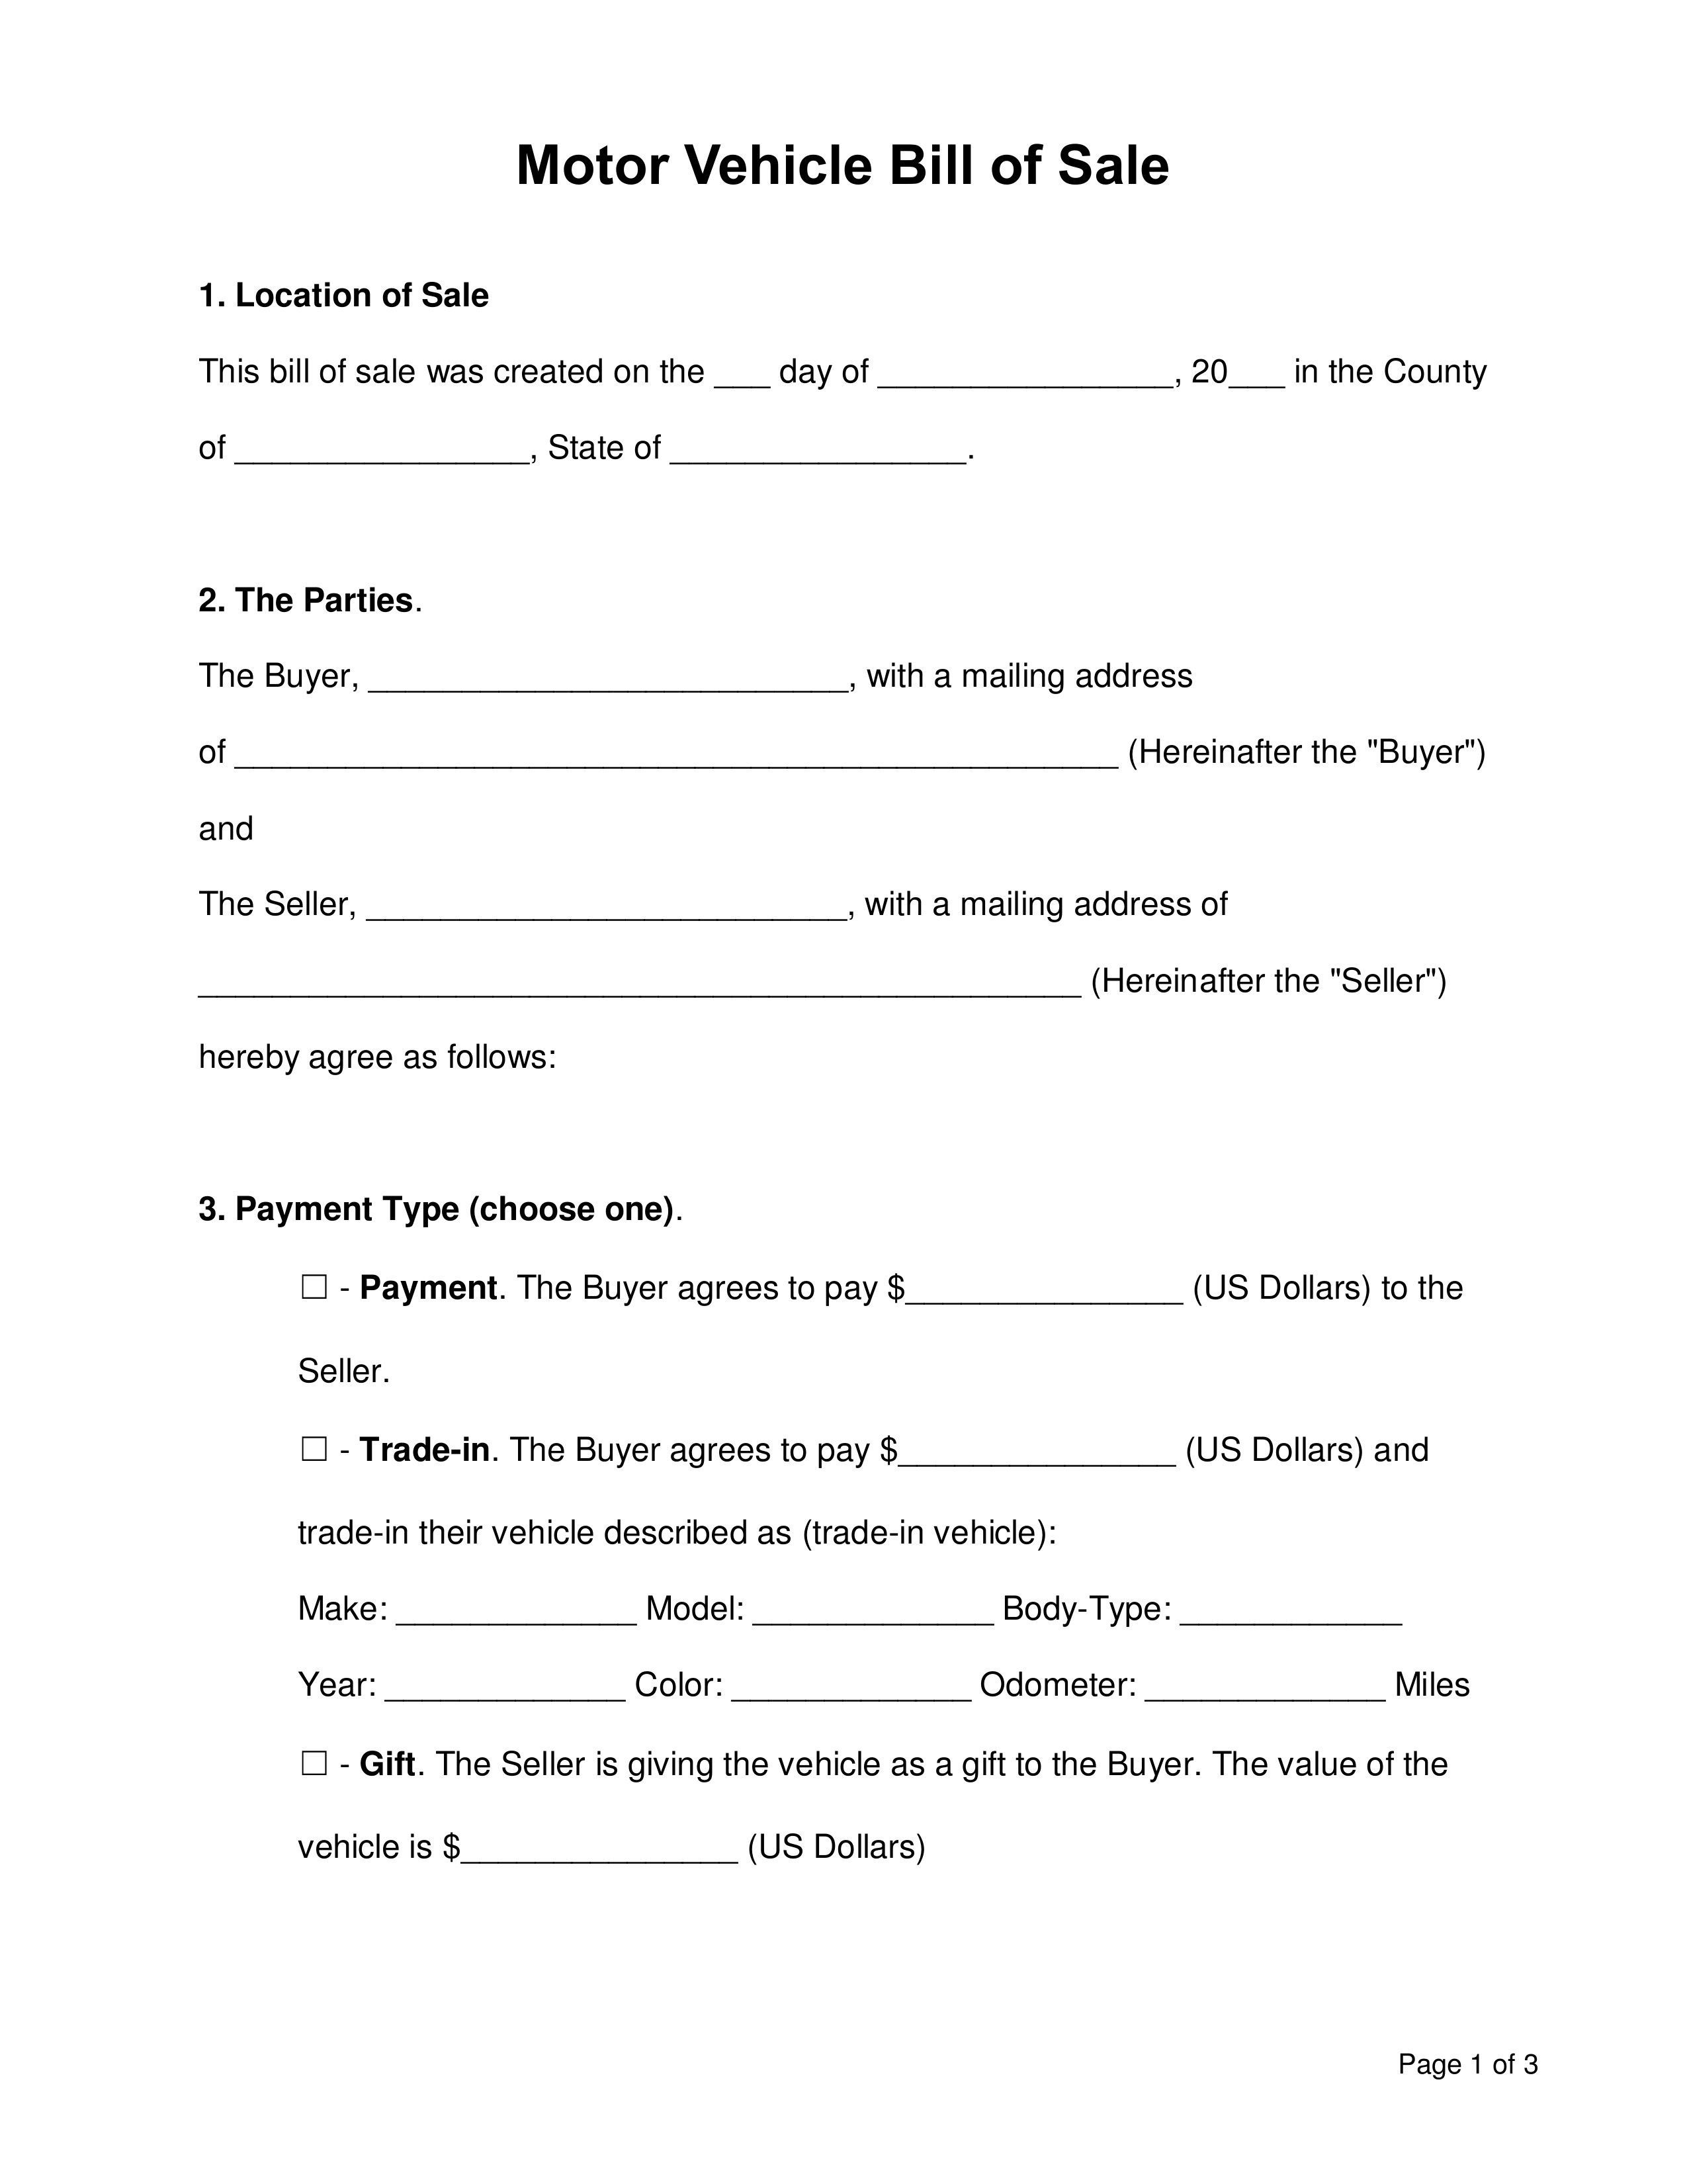 000 Staggering Template For Bill Of Sale Photo  Example Trailer Free Mobile Home Used CarFull